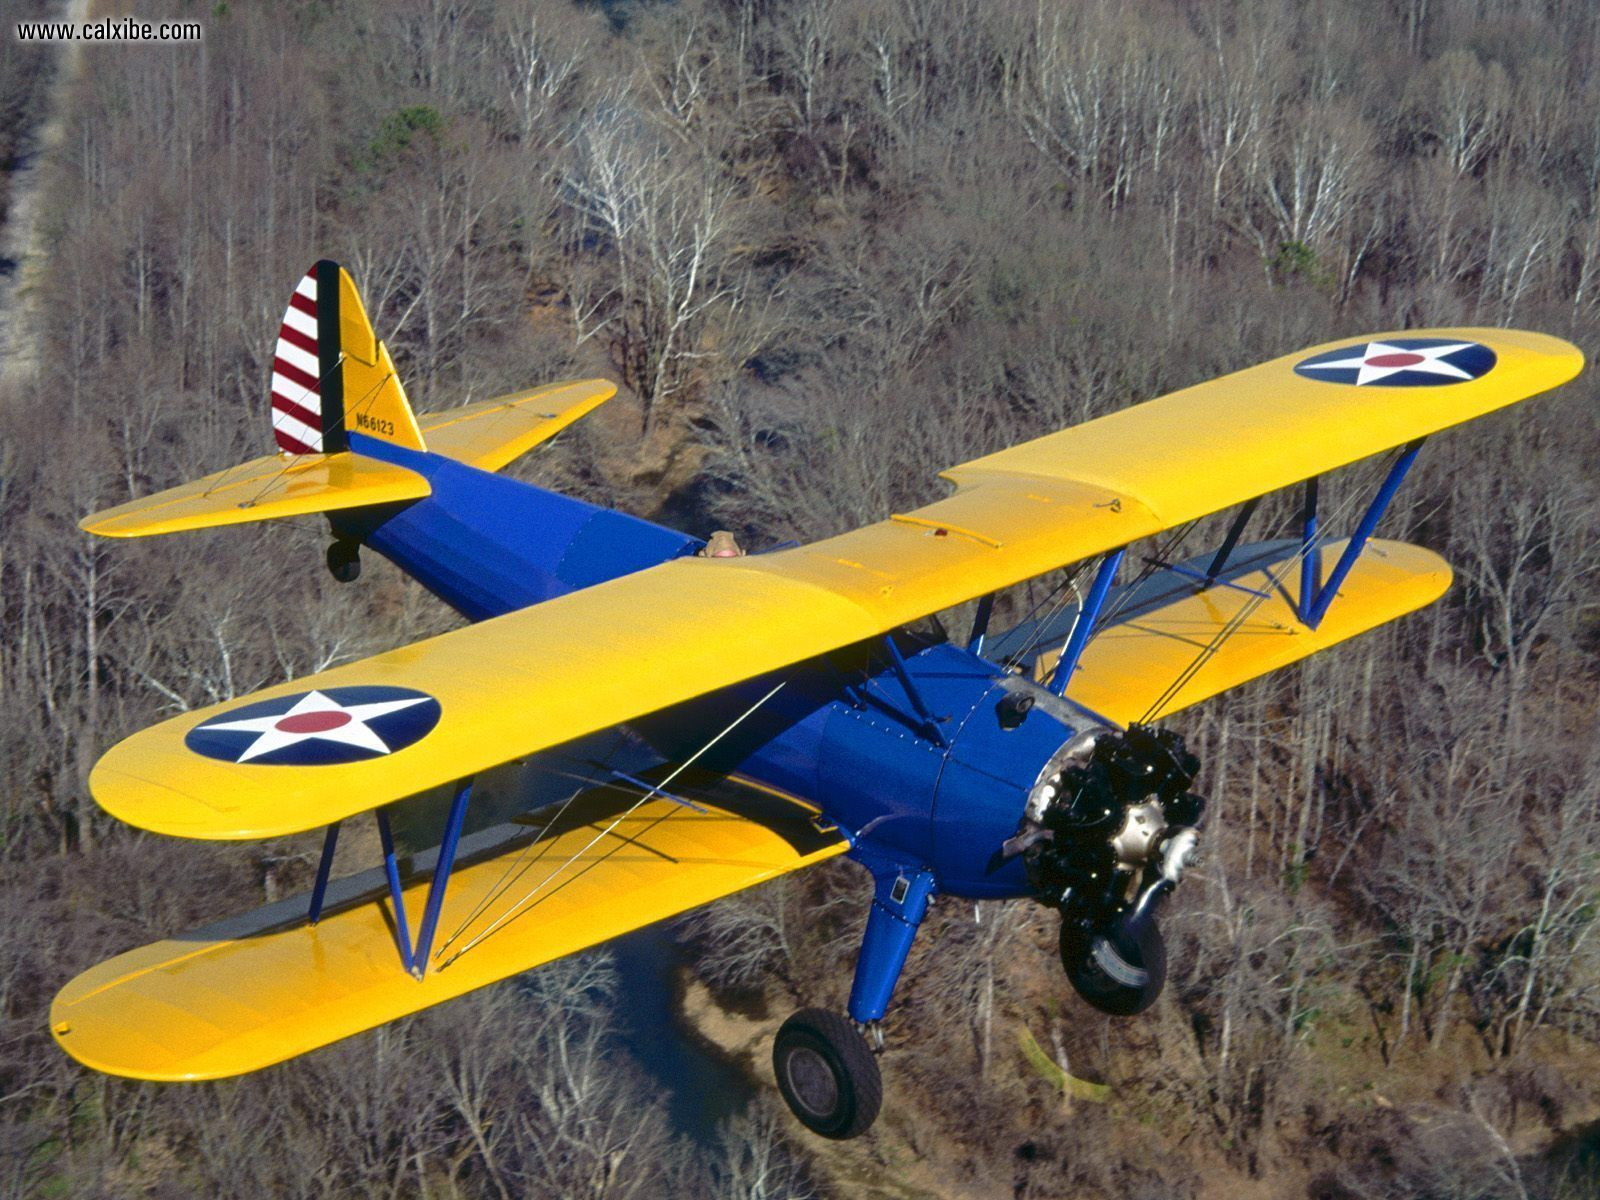 Stearman PT-17, this has to be one of my favorite planes of all time